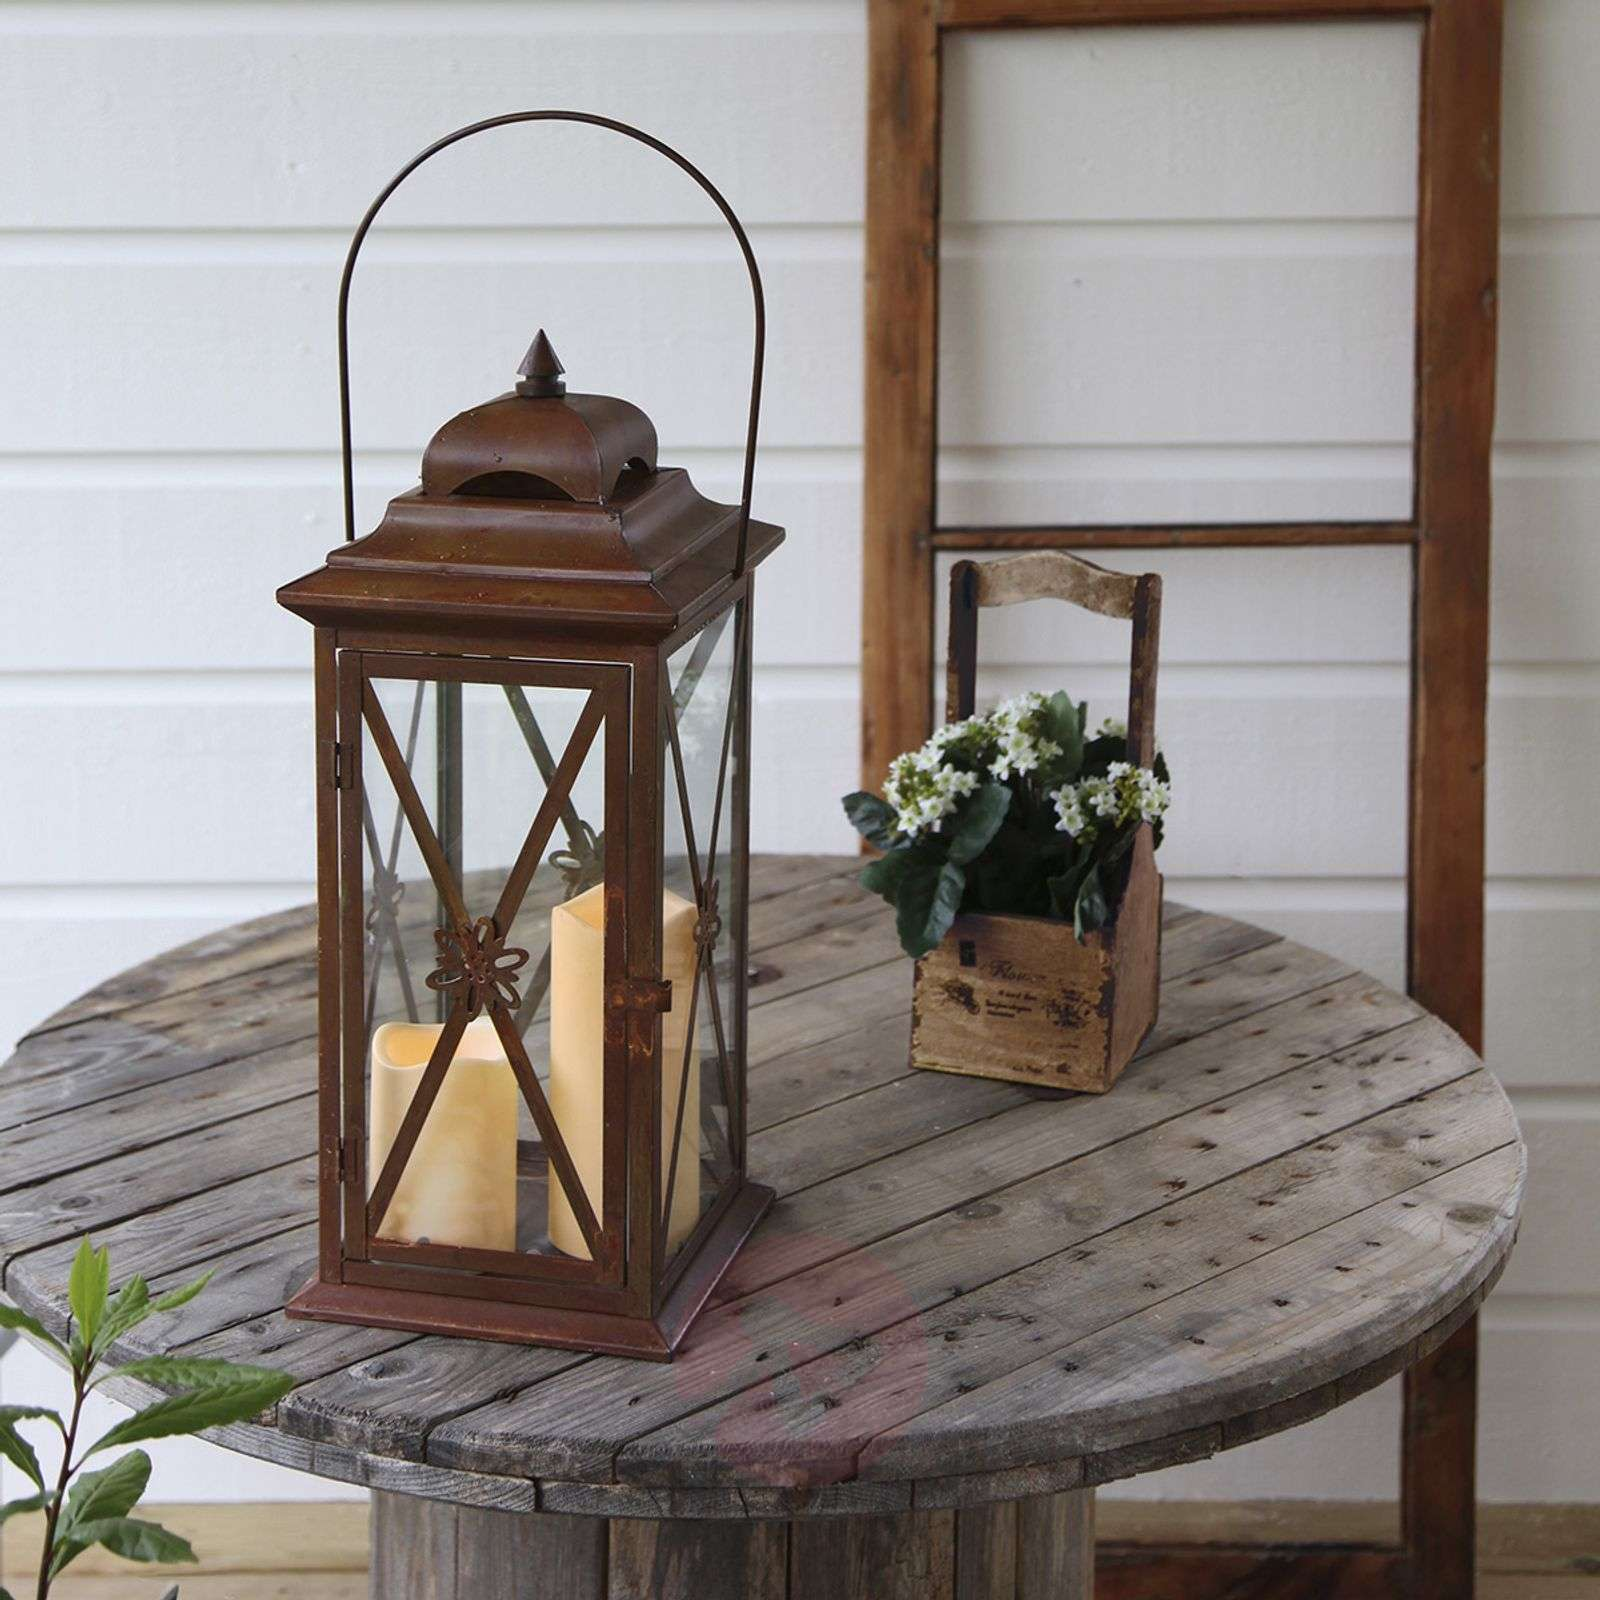 Rust-copper-coloured Lantern with 2 LED candles-1522552-01